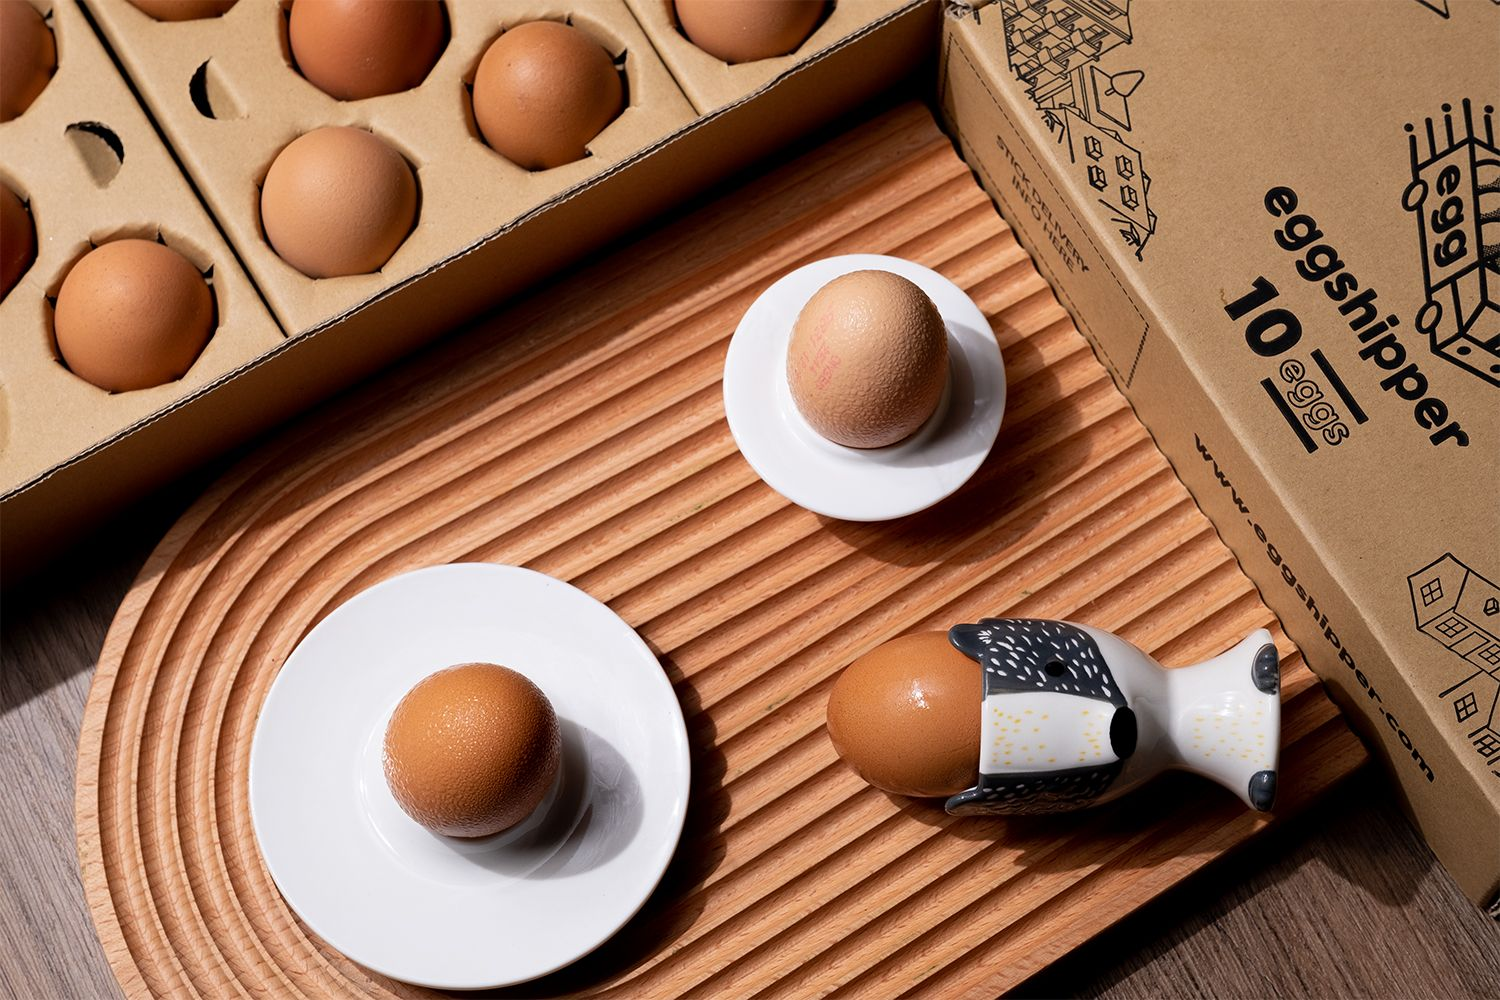 Eggshipper by Safegg™   20% OFF ON ALL PRODUCT